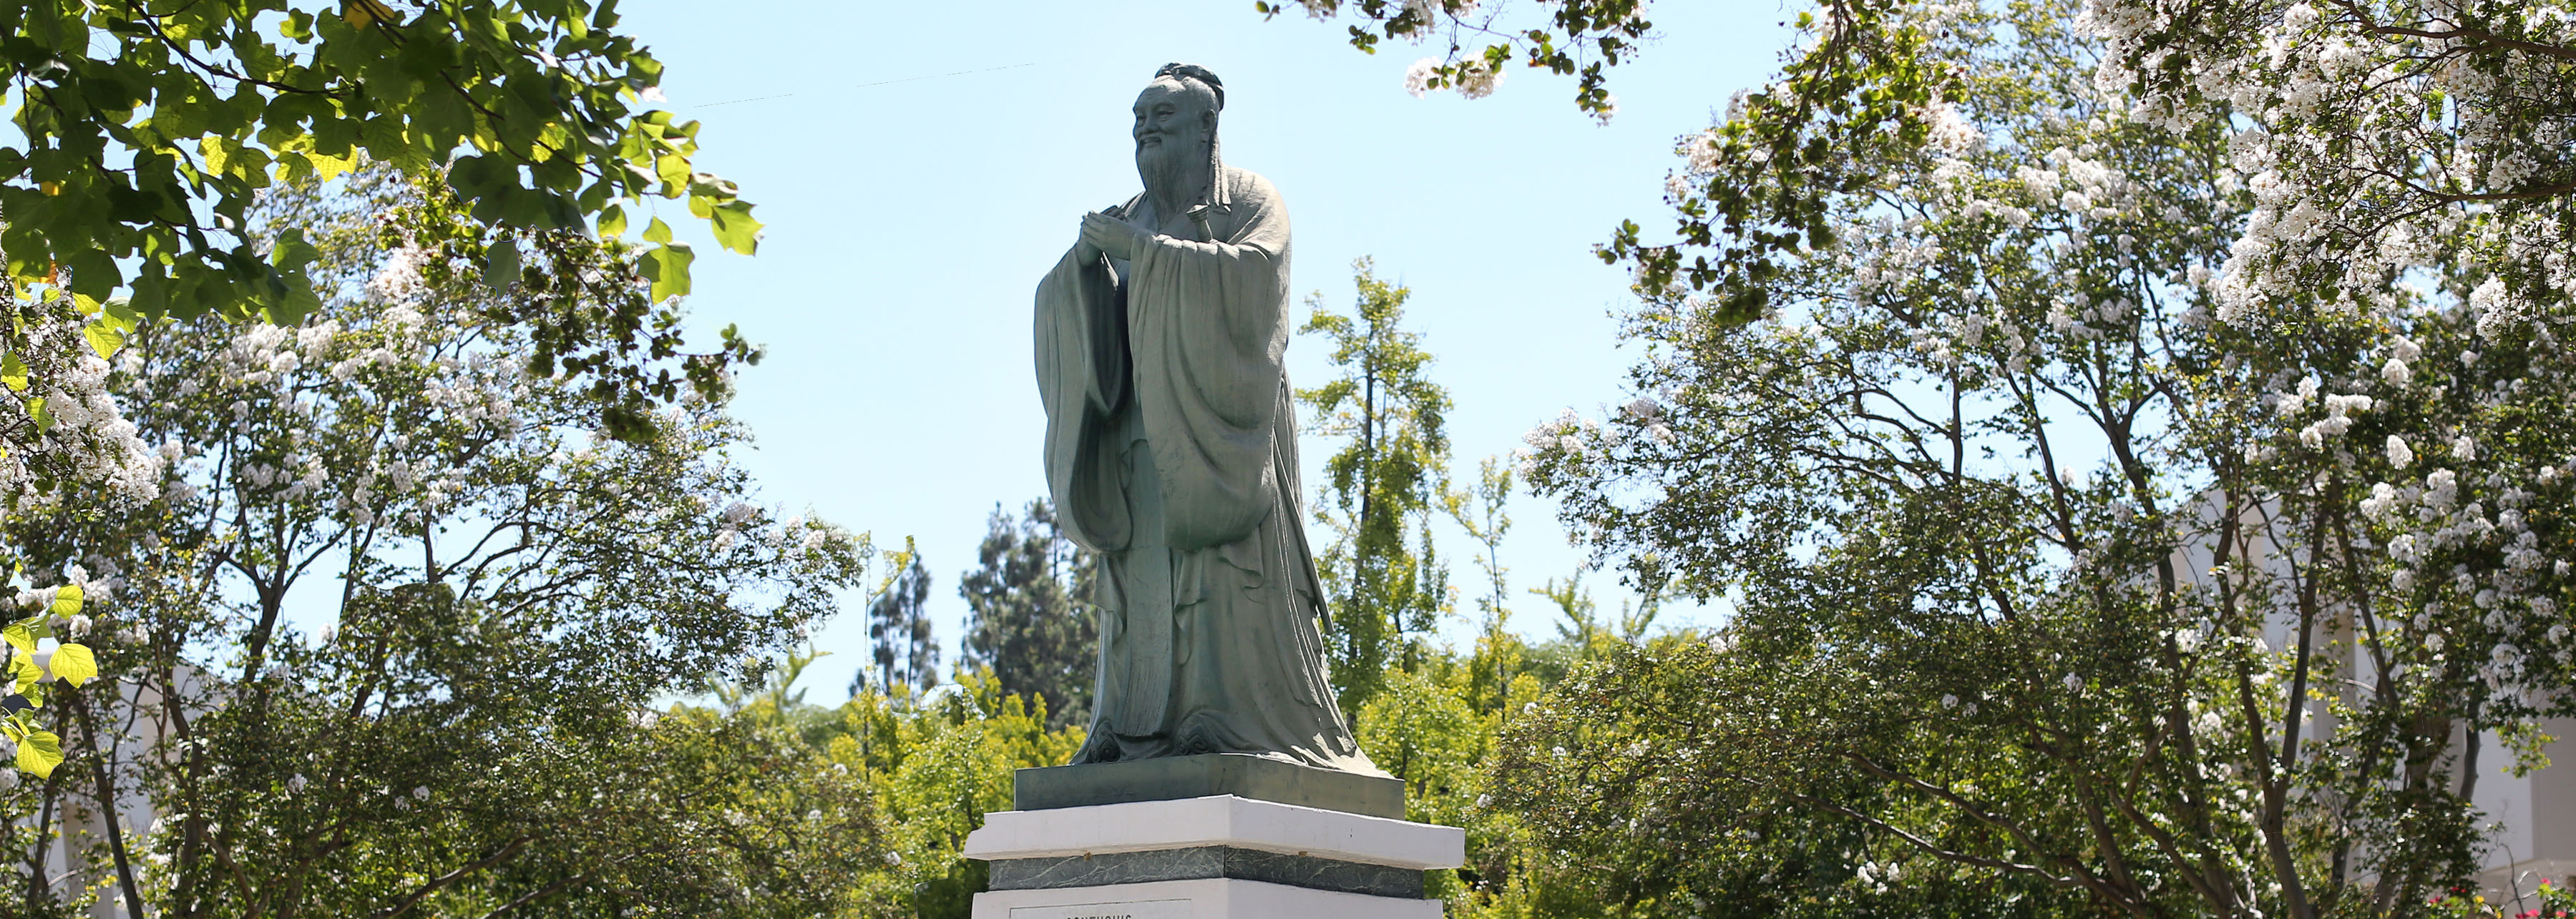 photo of Confucius statue